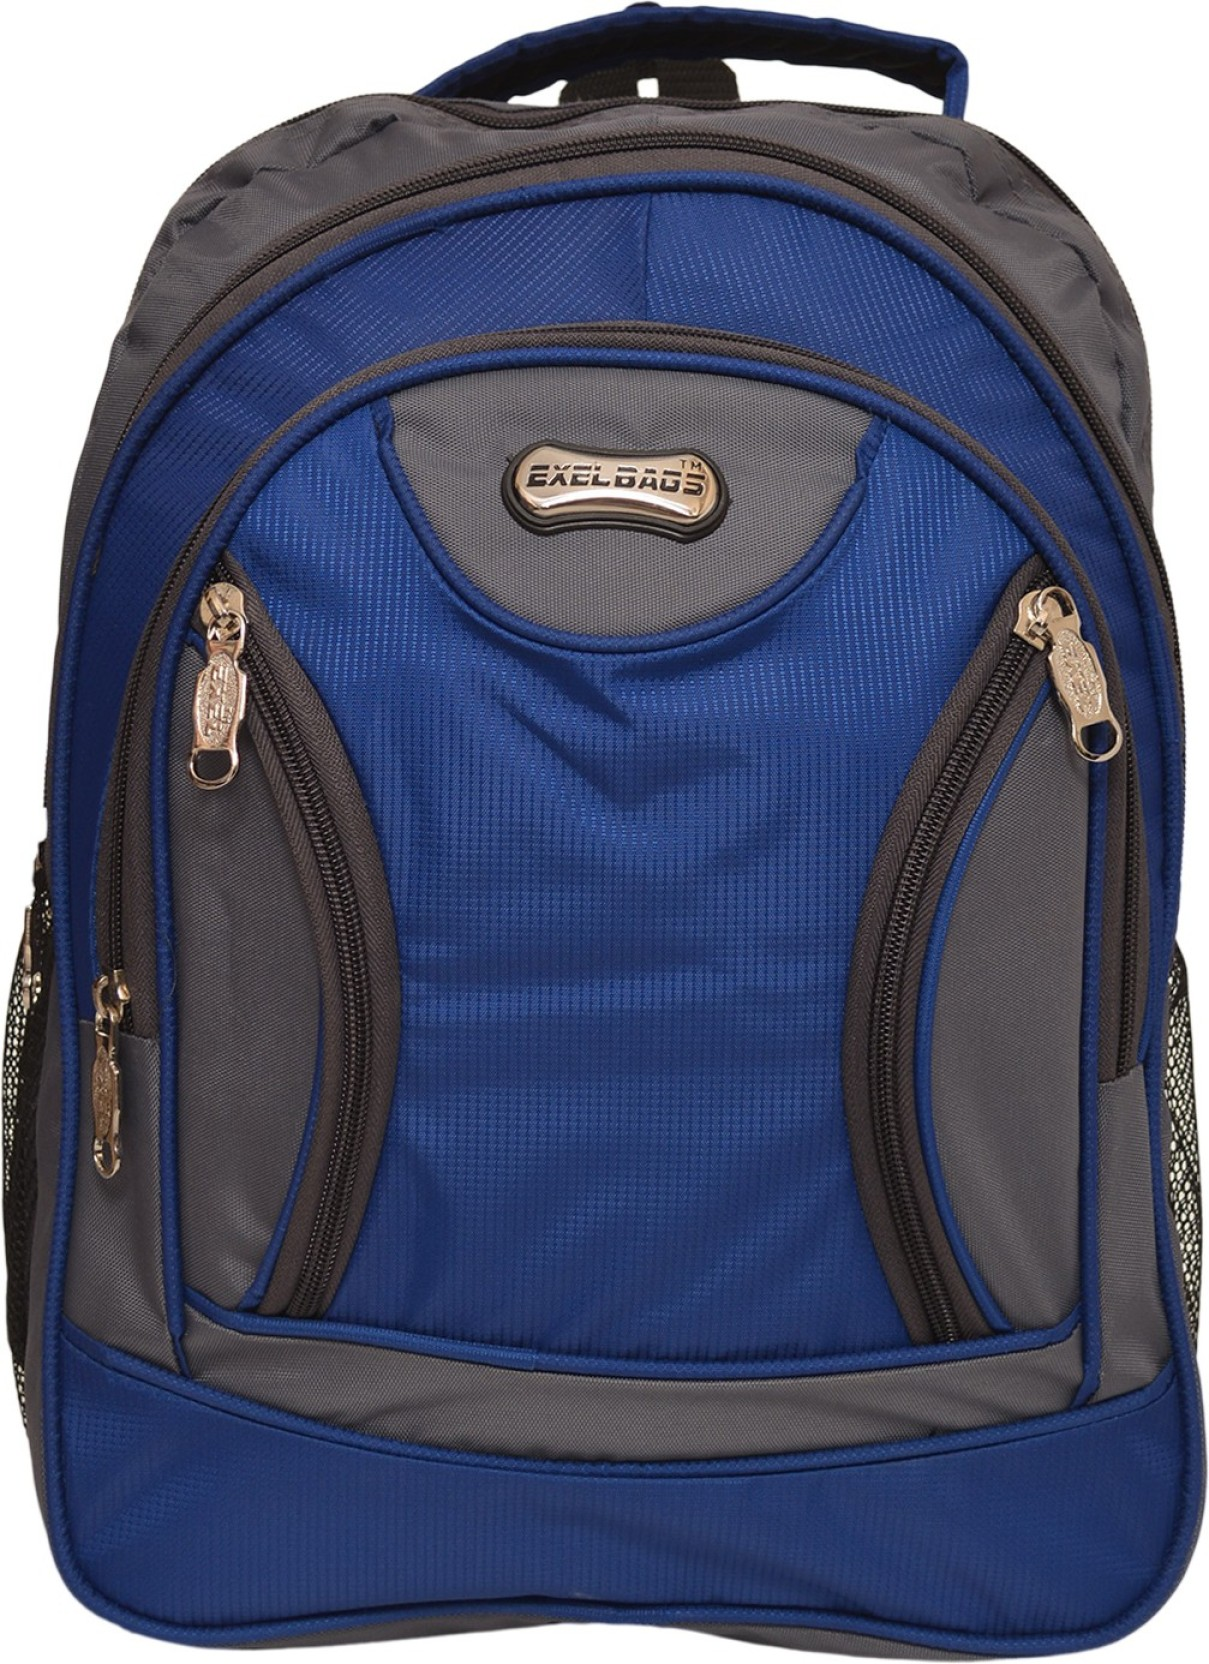 6c7c0e8ce9 Exel Bags Travel Backpack 30 L Backpack Multicolor - Price in India ...